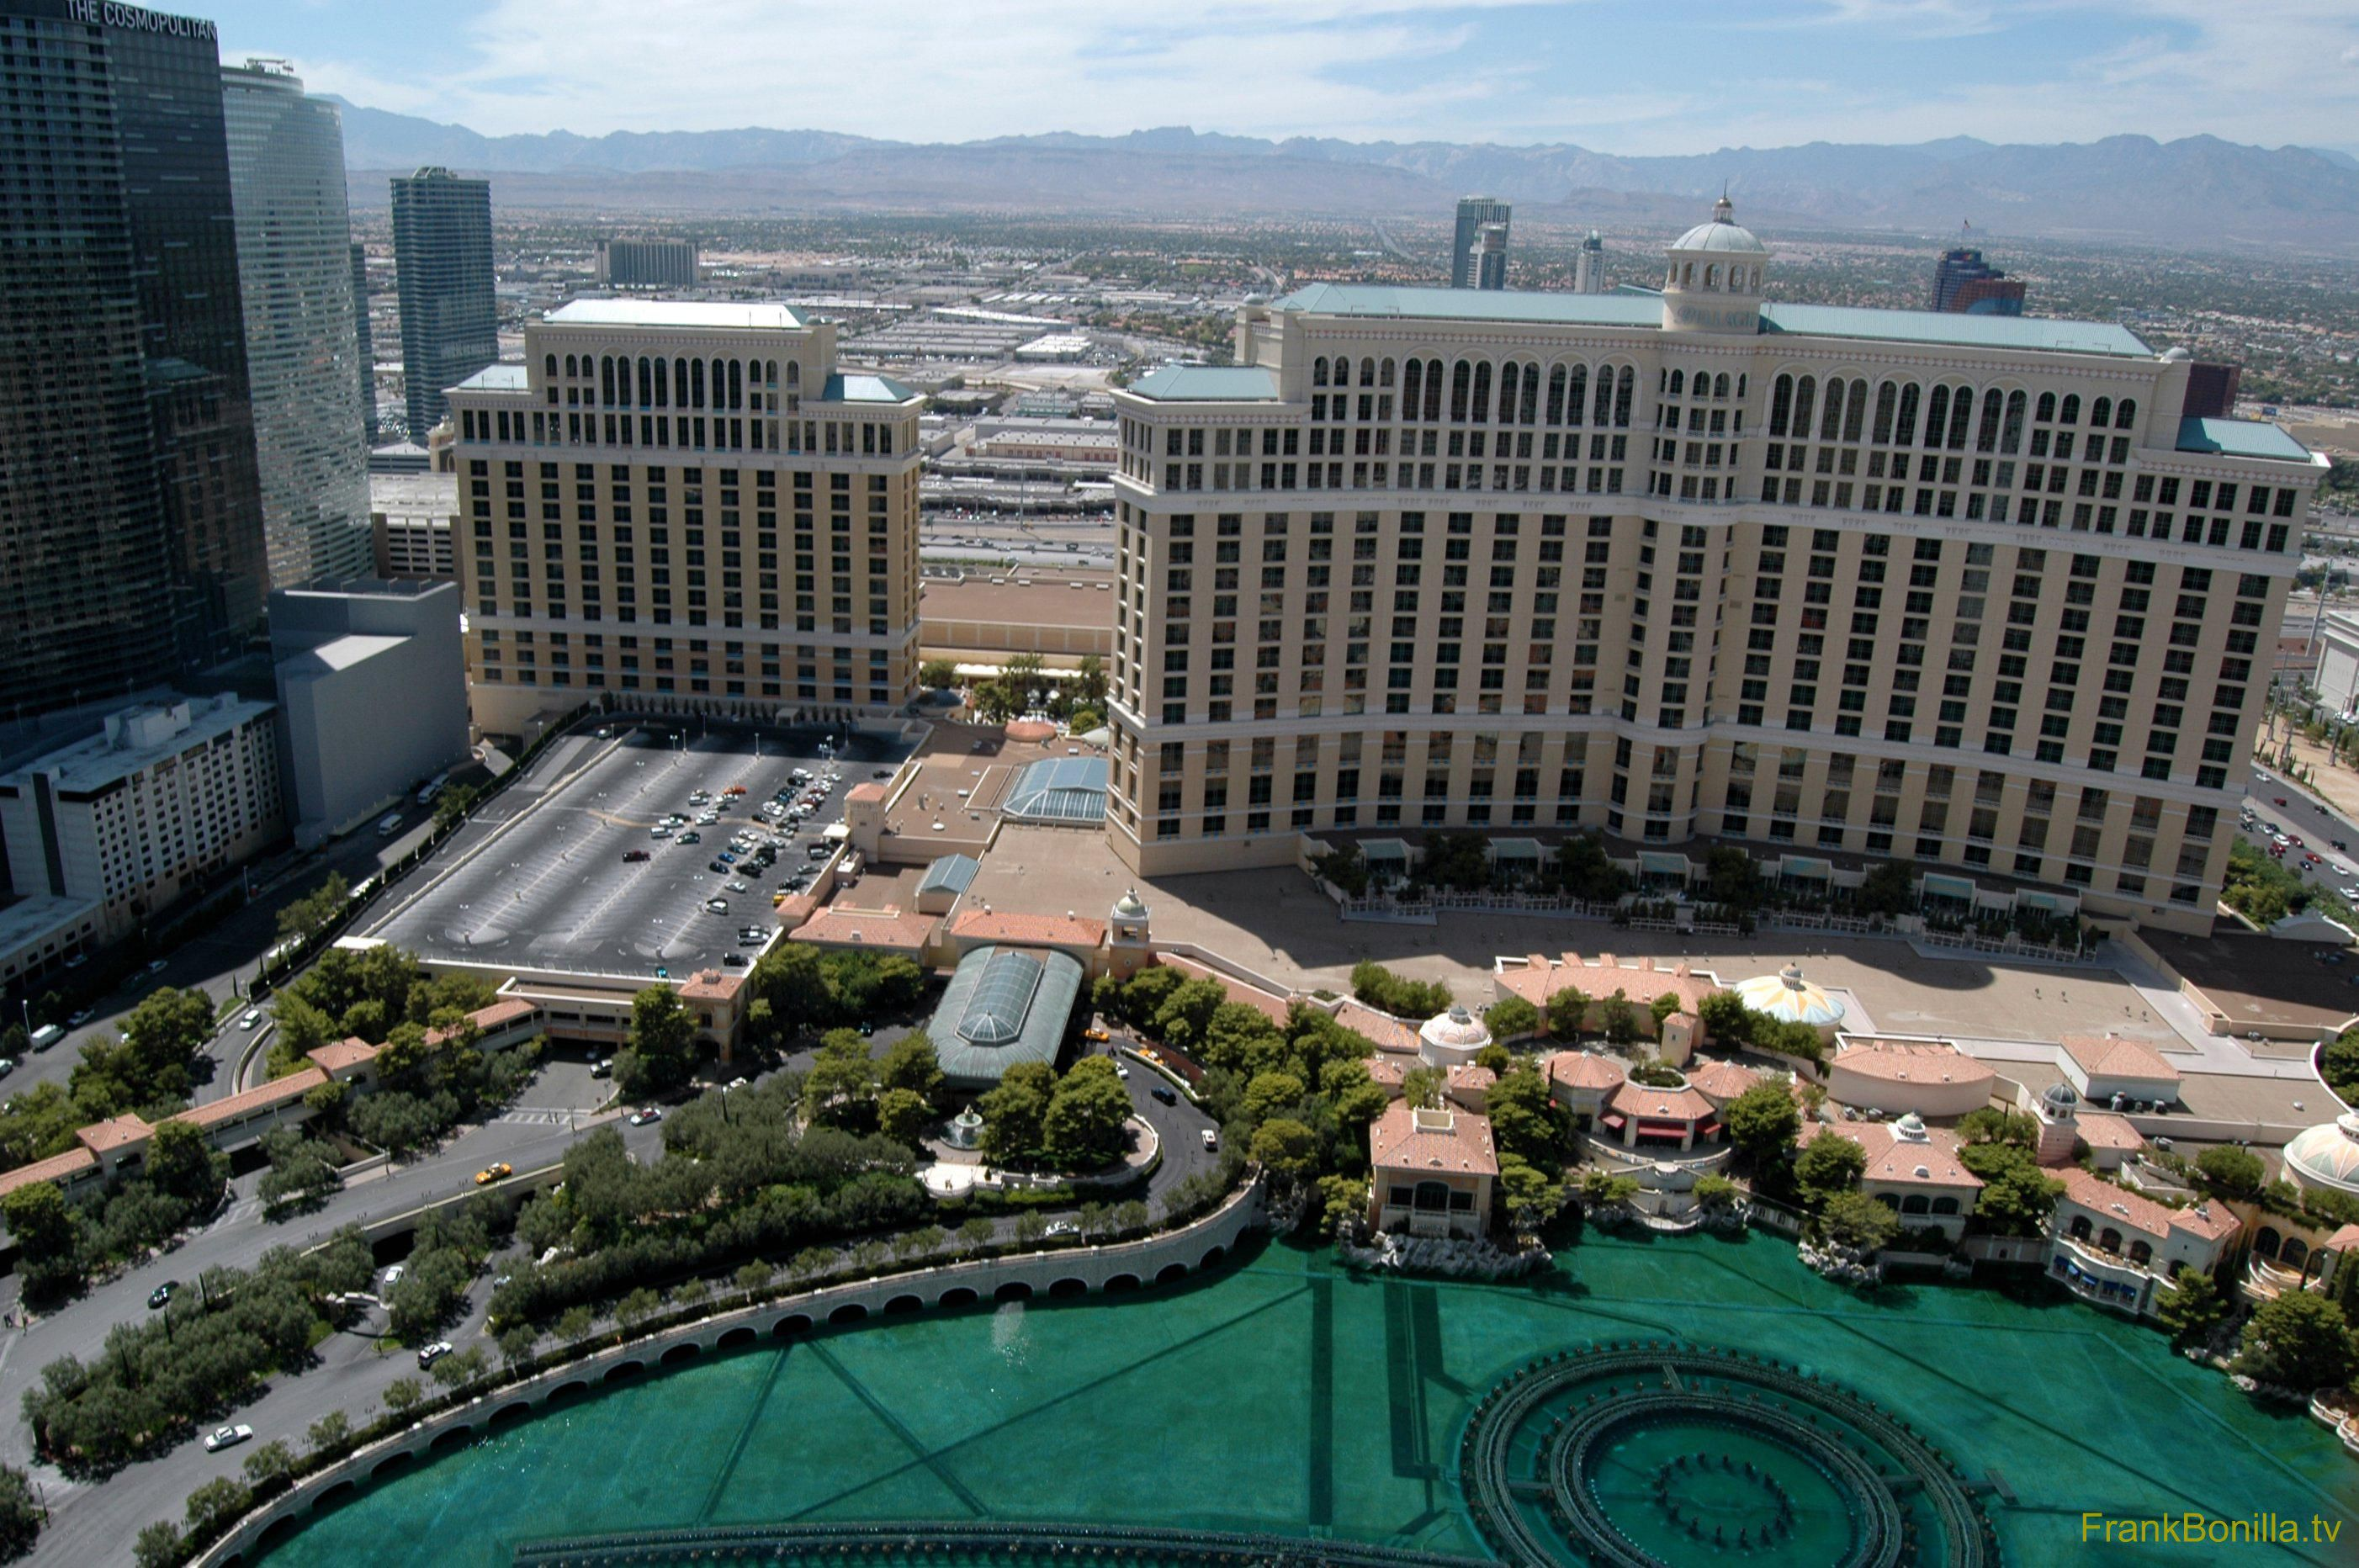 BEST CASINOS ON THE STRIP